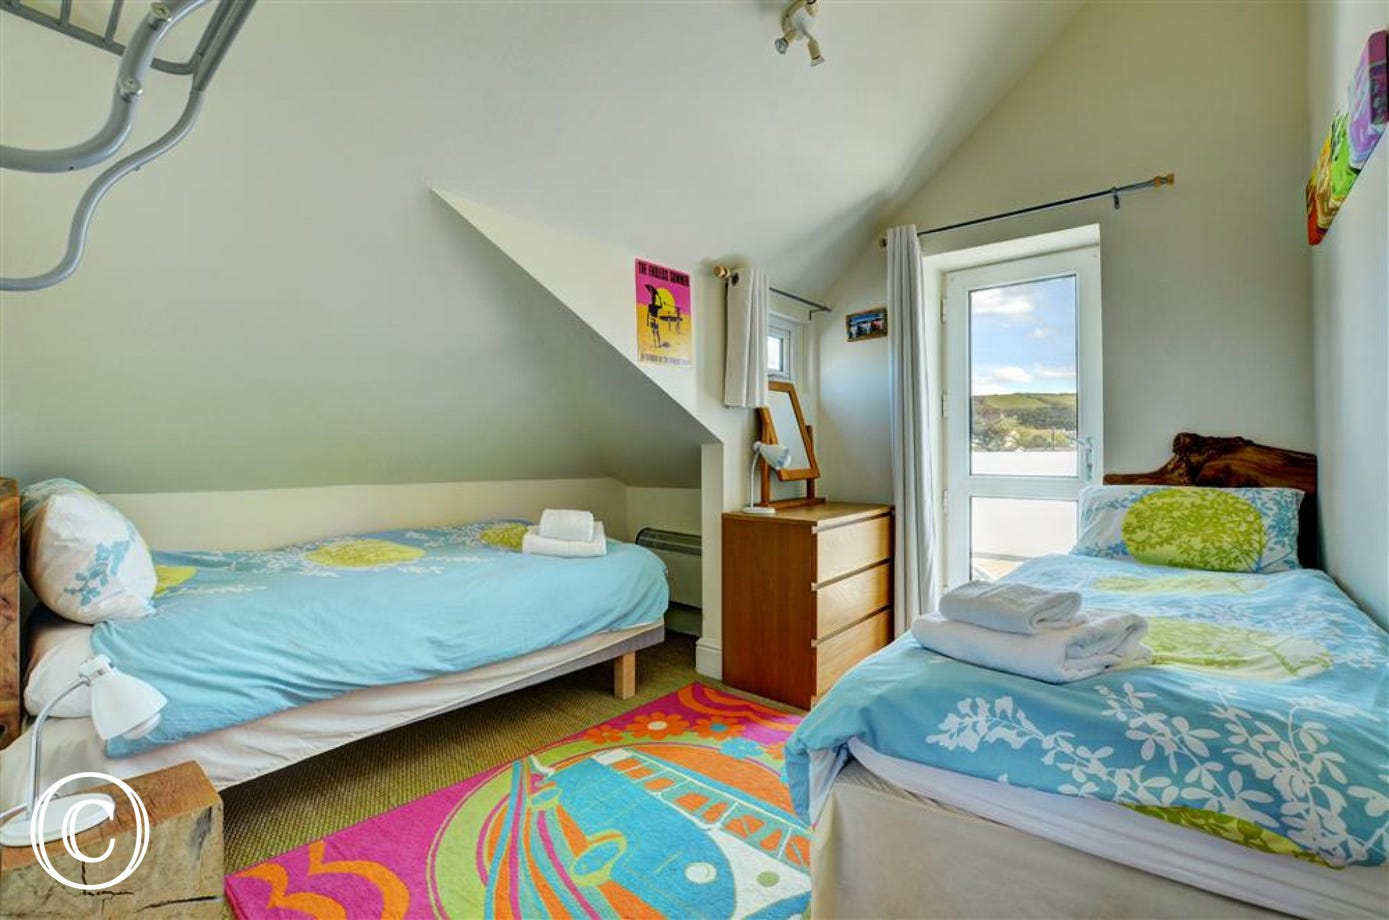 The brightly decorated twin room benefits from a patio door to the balcony